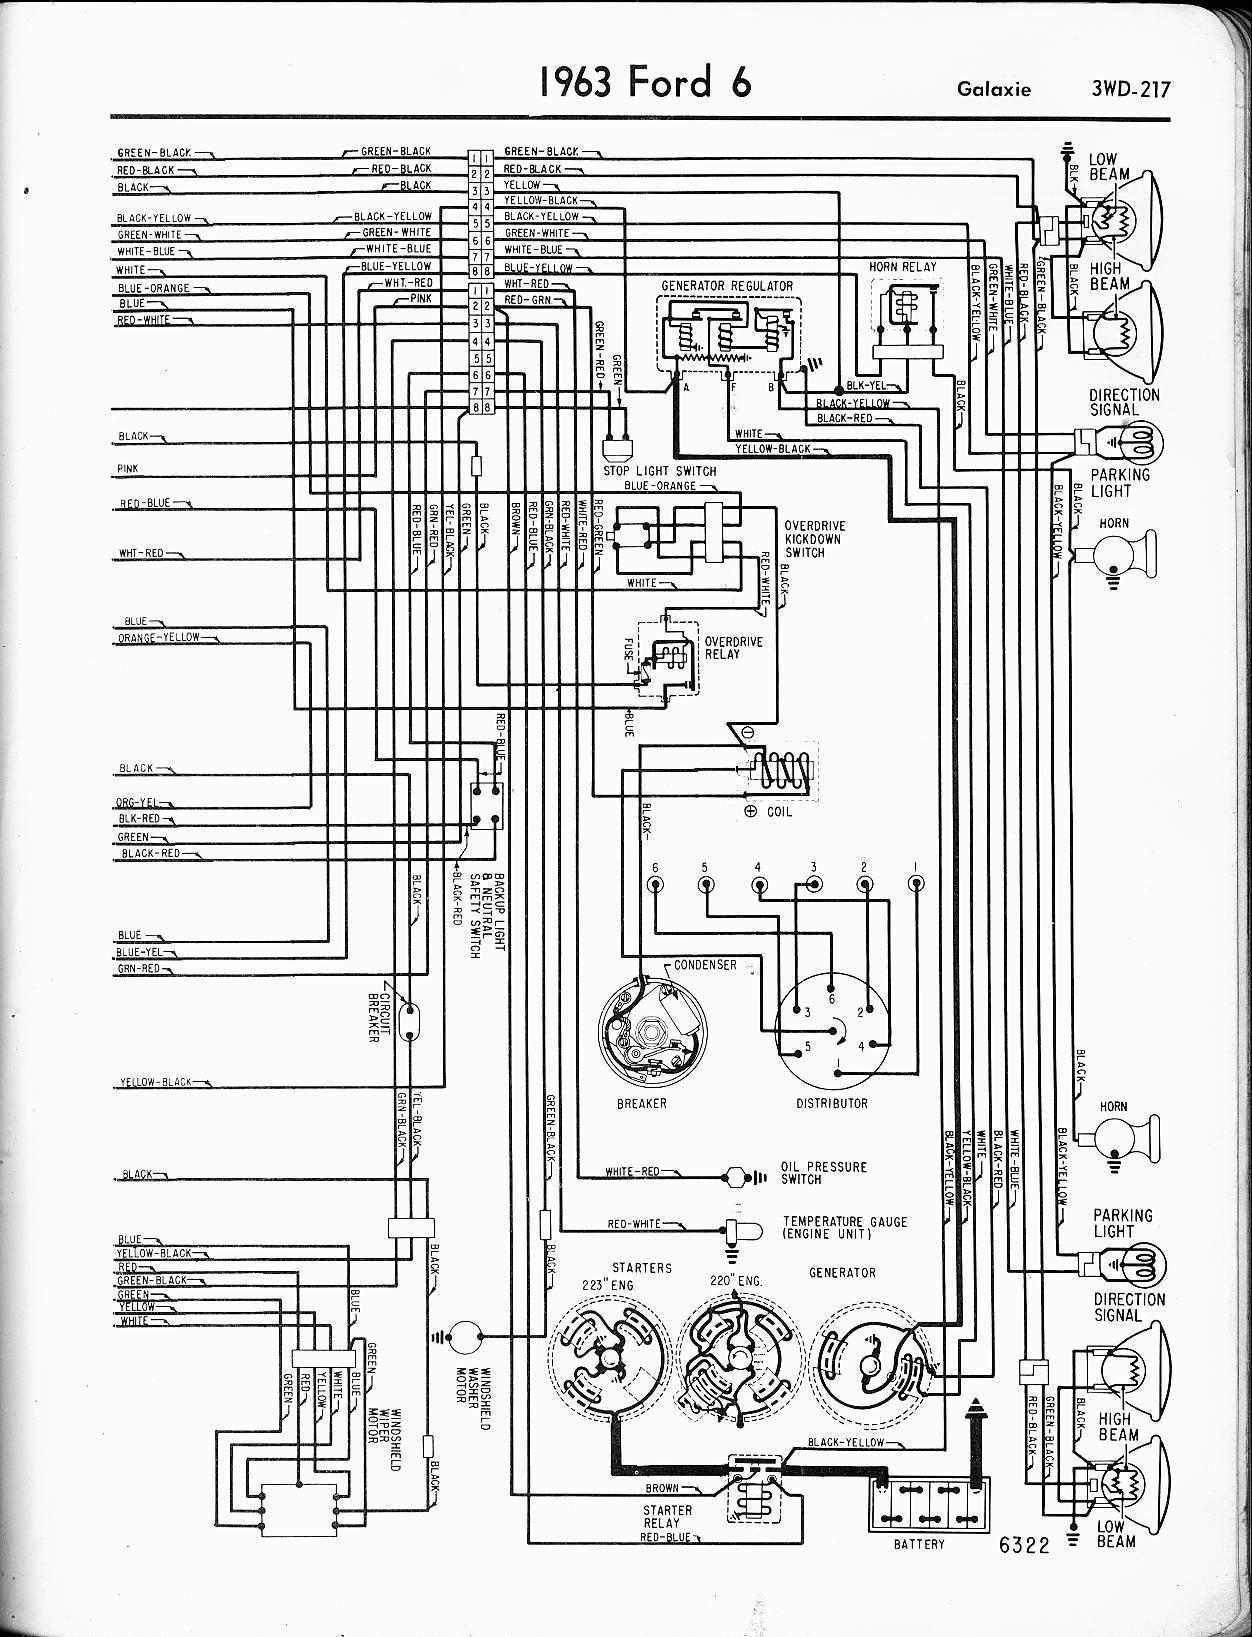 1963 galaxie wiring diagram enthusiast wiring diagrams u2022 rh bwpartnersautos com